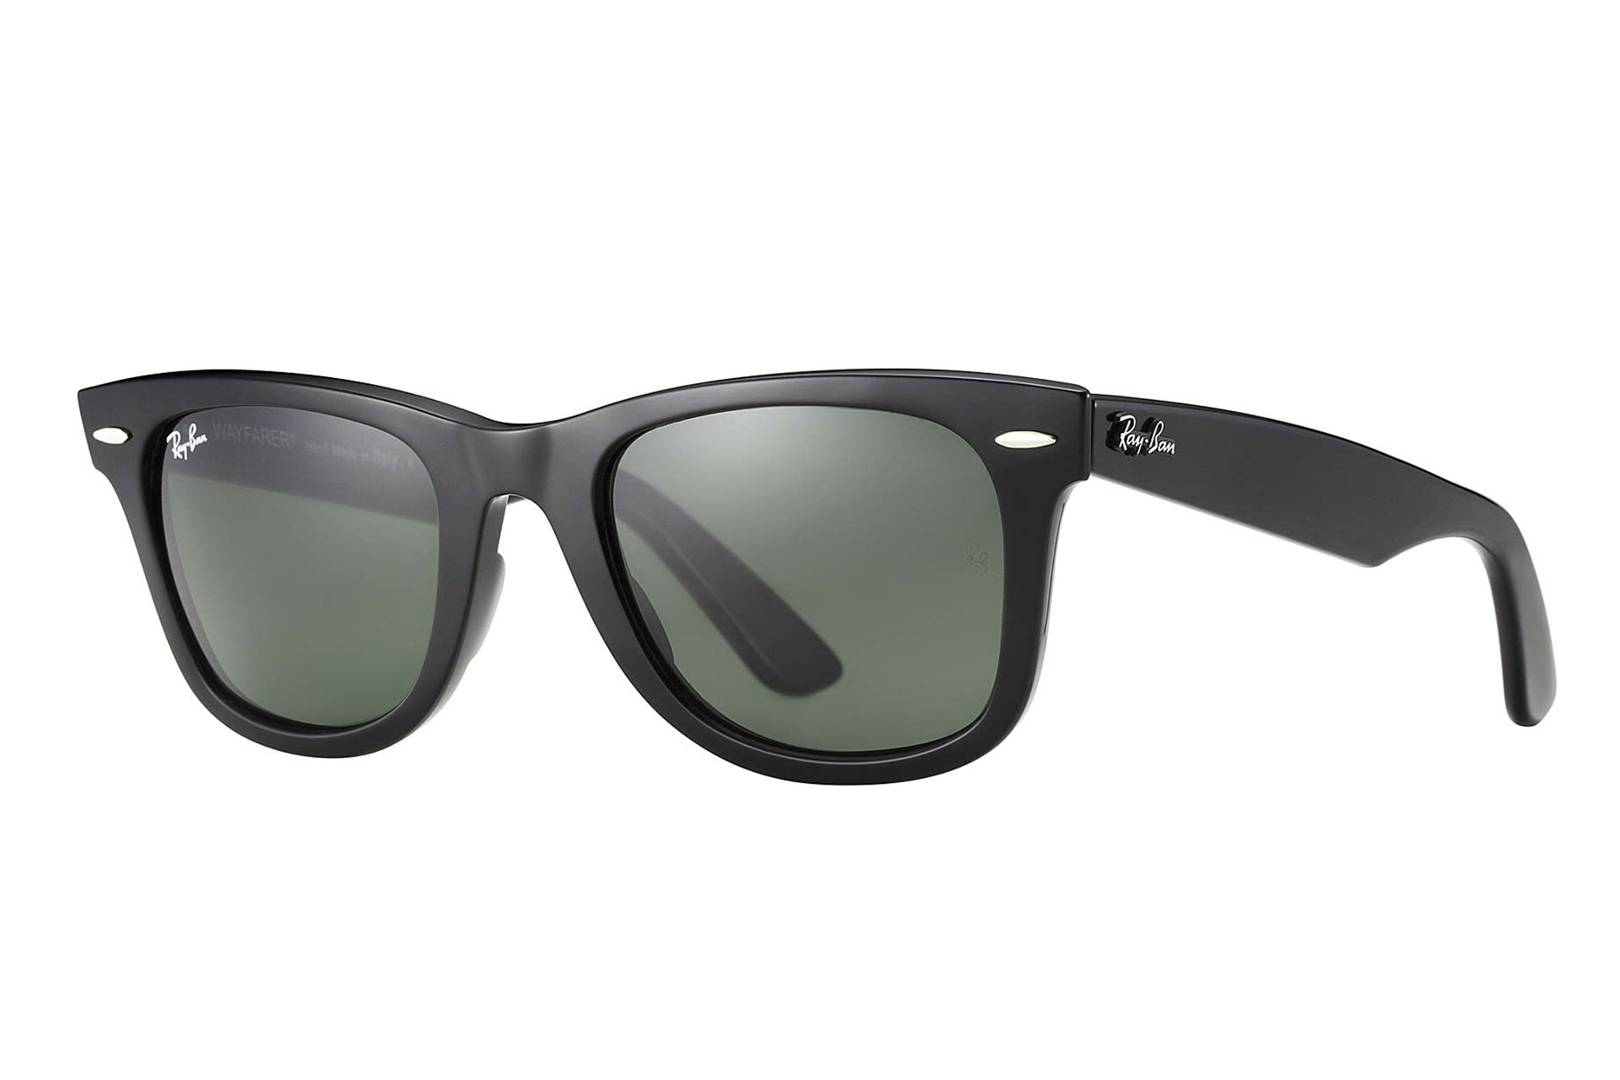 a127f9ddf37f Best sunglasses 2019  the most stylish new shades for men